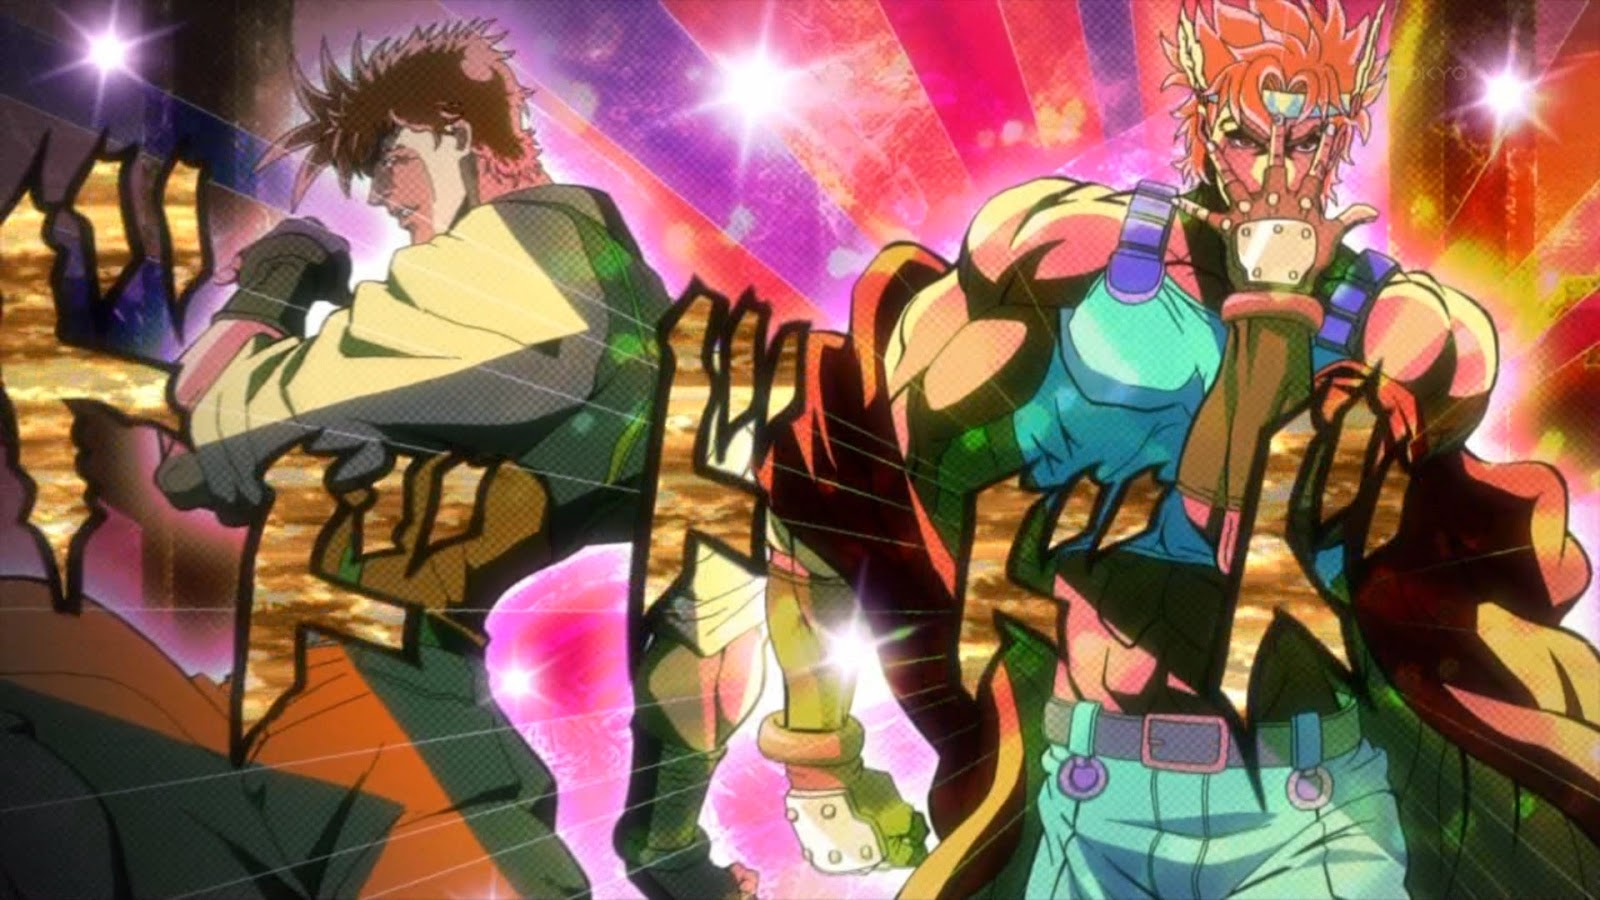 The Hidden Links Between Jojo's Bizarre Adventure and Metal Gear